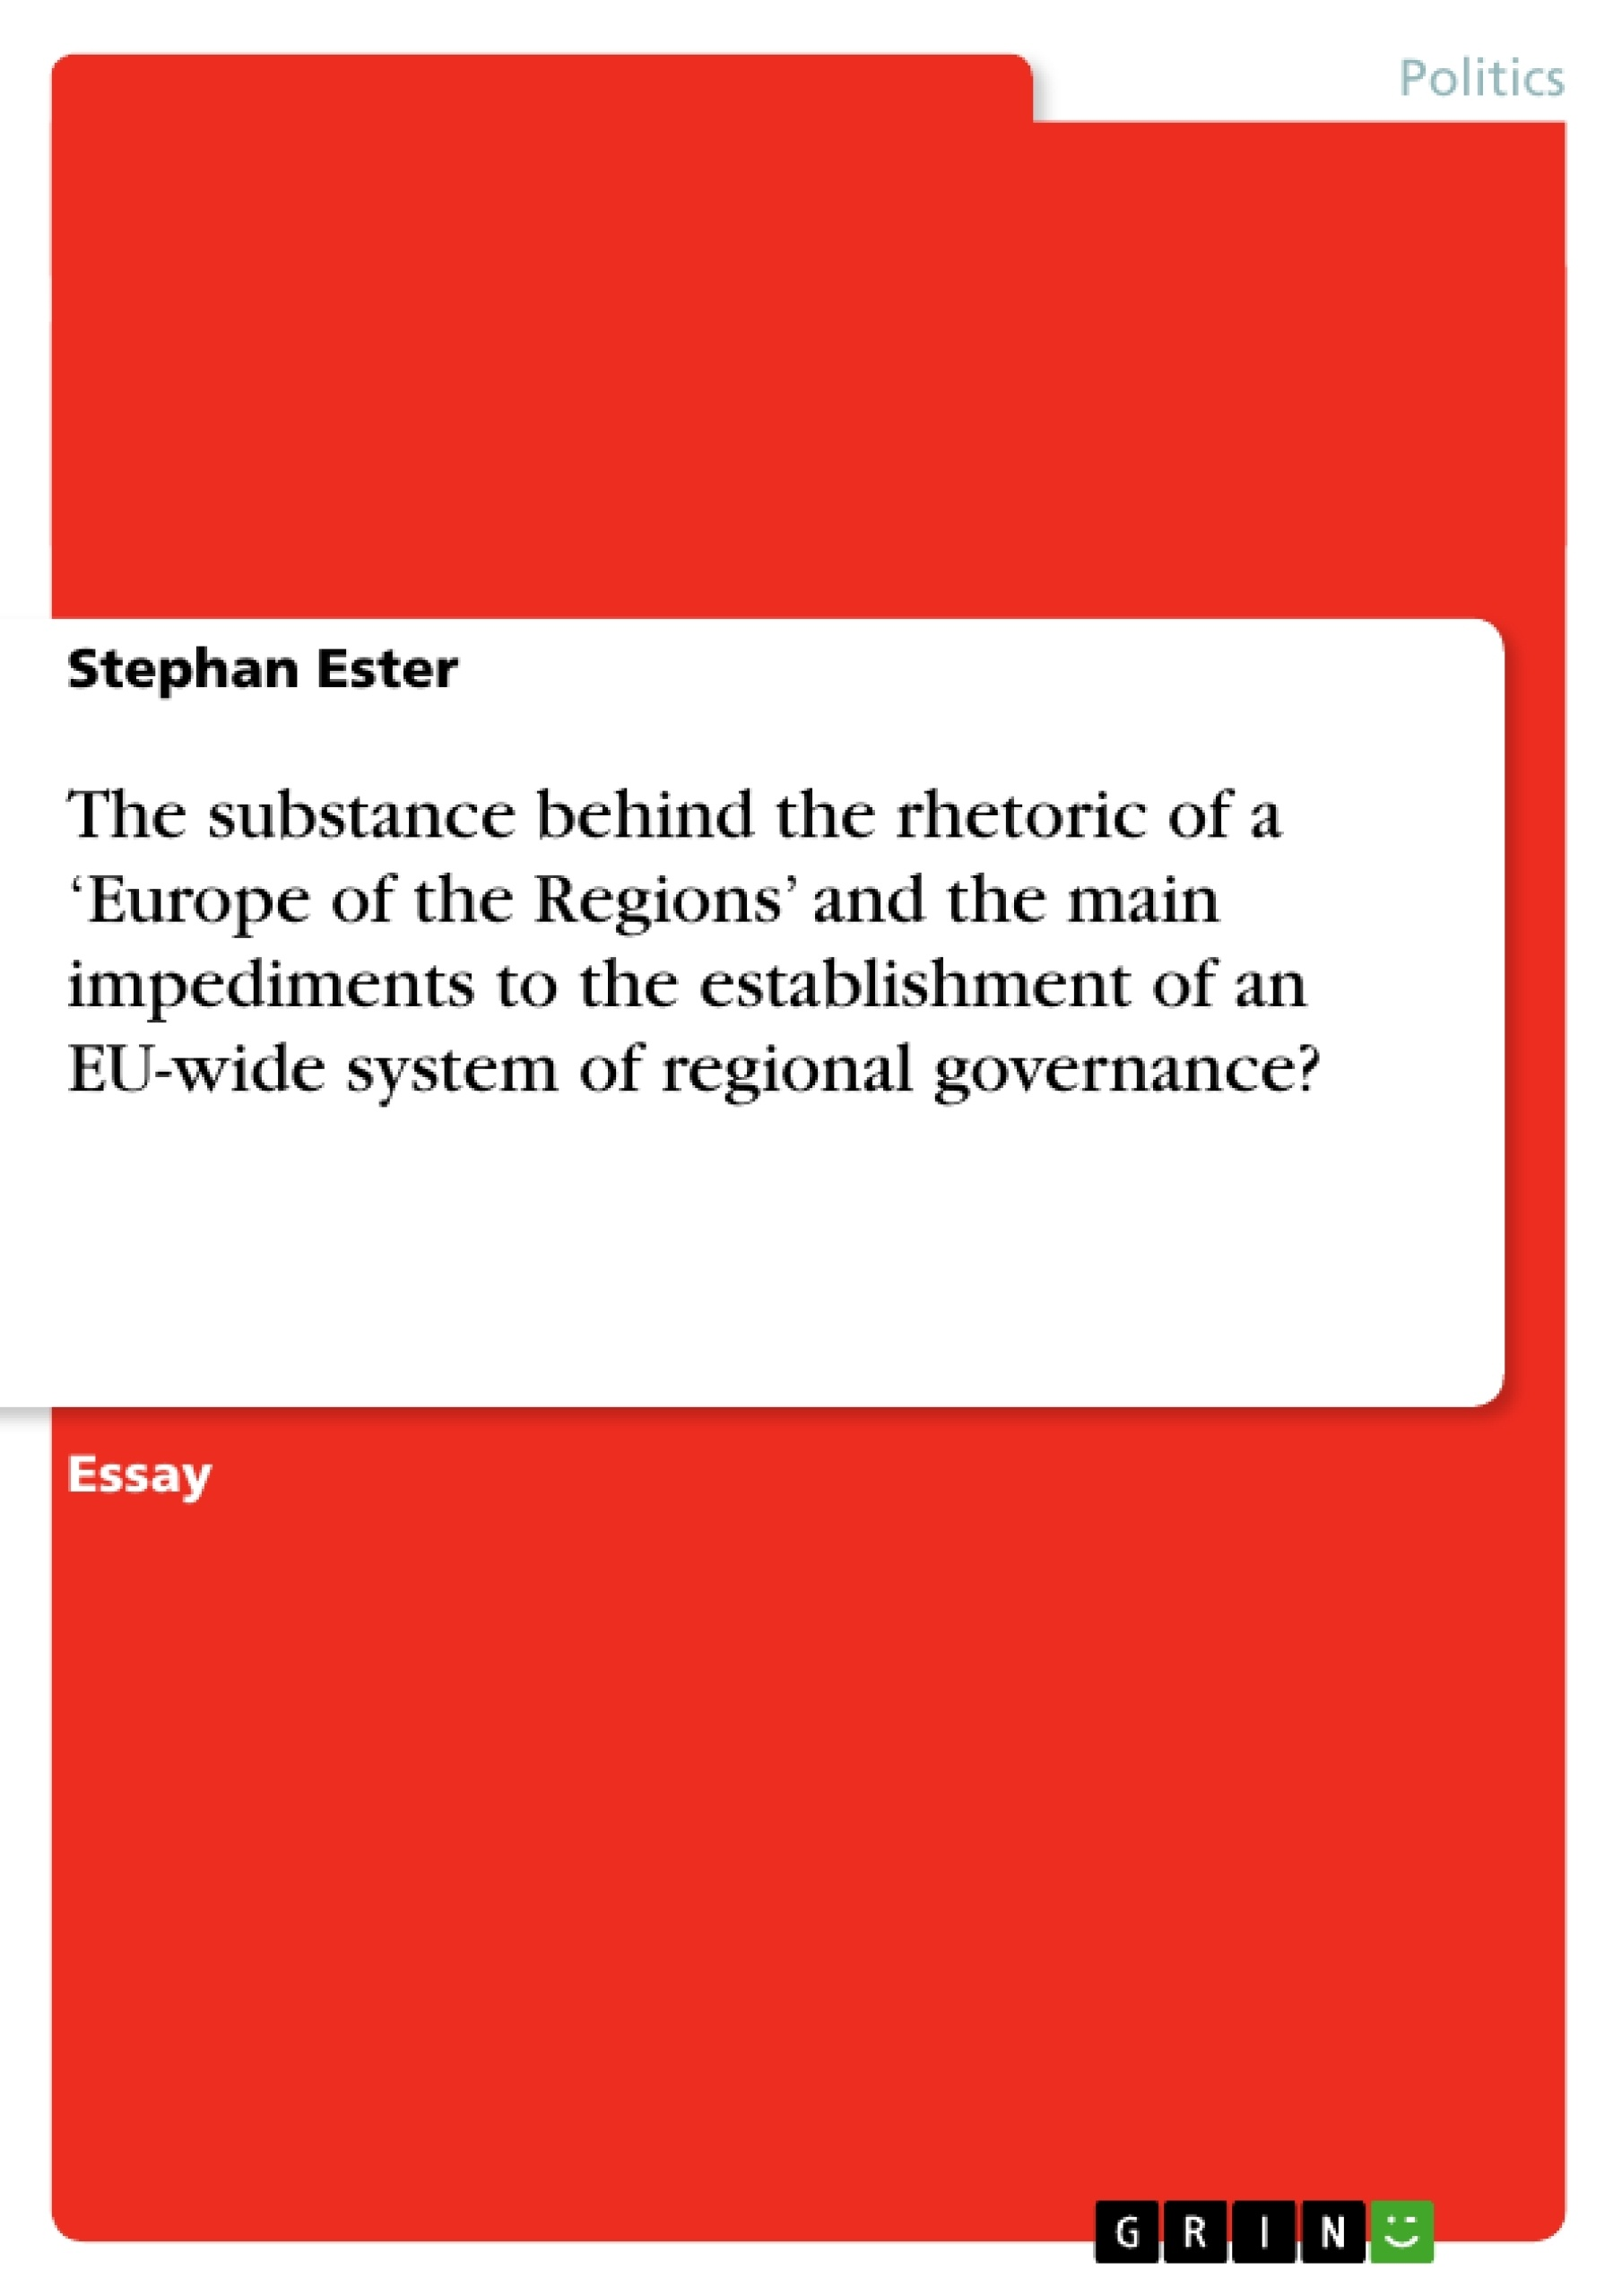 Title: The substance behind the rhetoric of a 'Europe of the Regions' and  the main impediments to the establishment of an EU-wide system of regional governance?